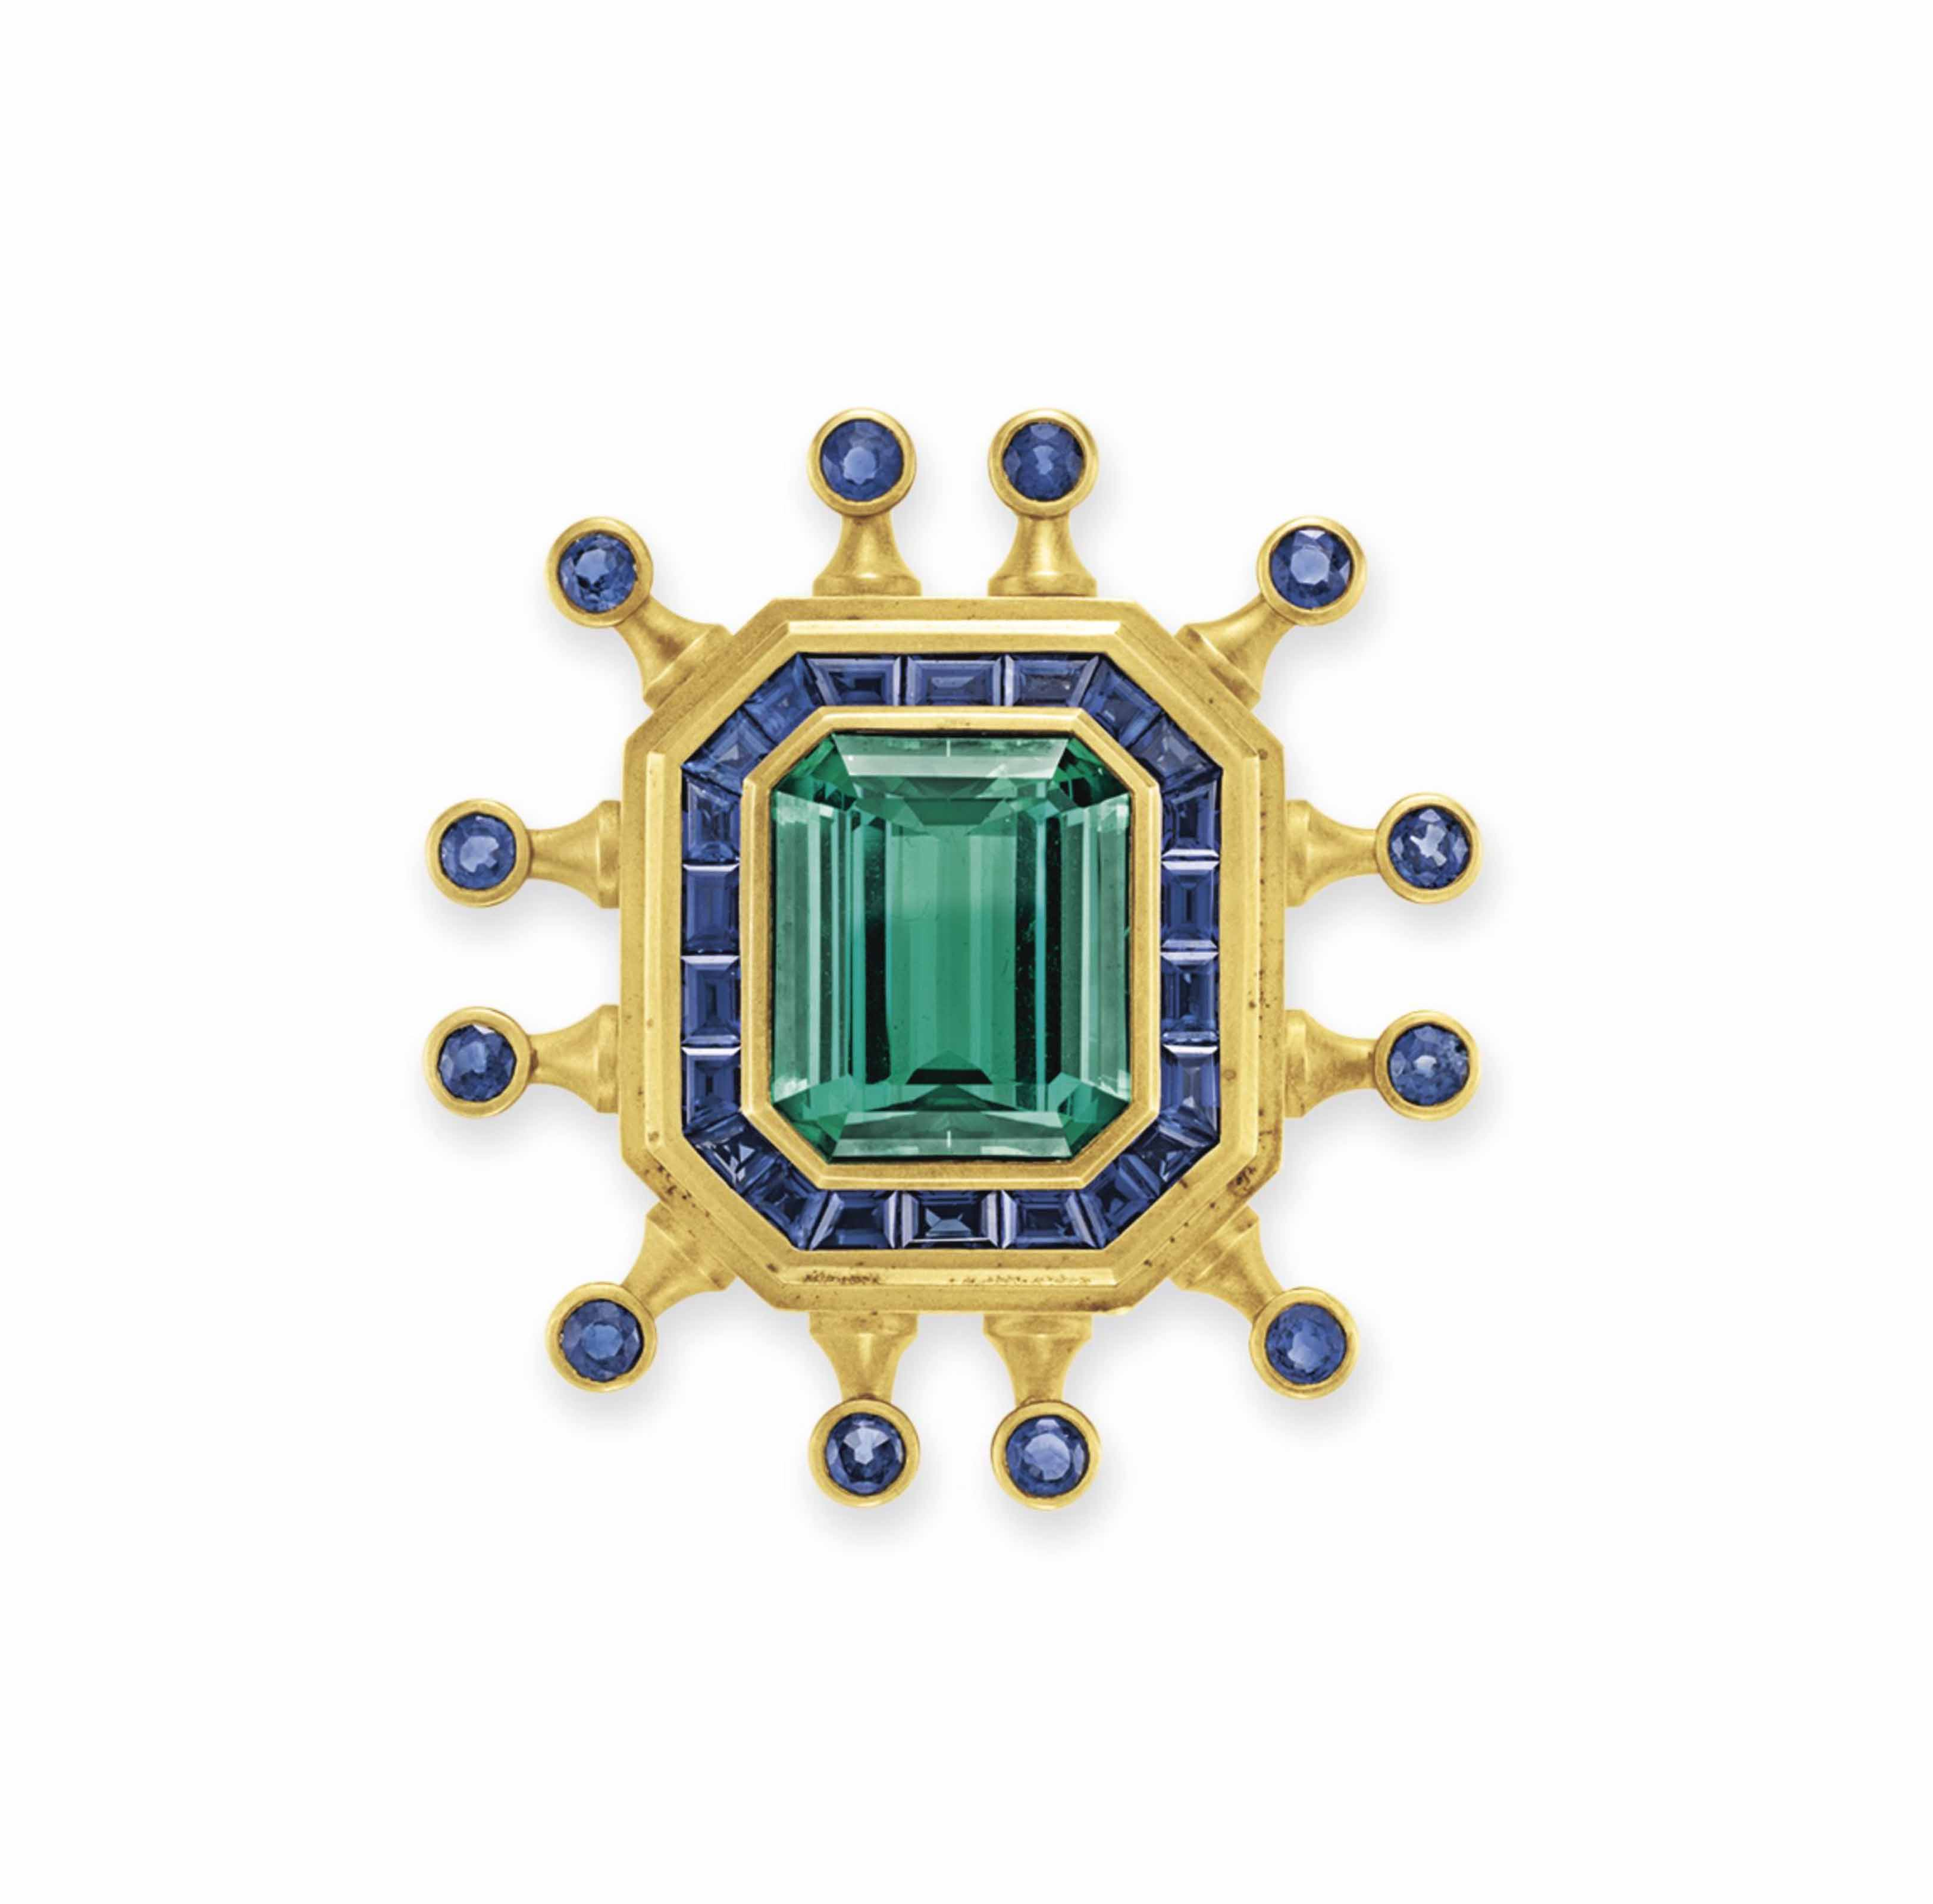 A SAPPHIRE, TOURMALINE AND GOLD BROOCH, BY BARRY KIESELSTEIN-CORD